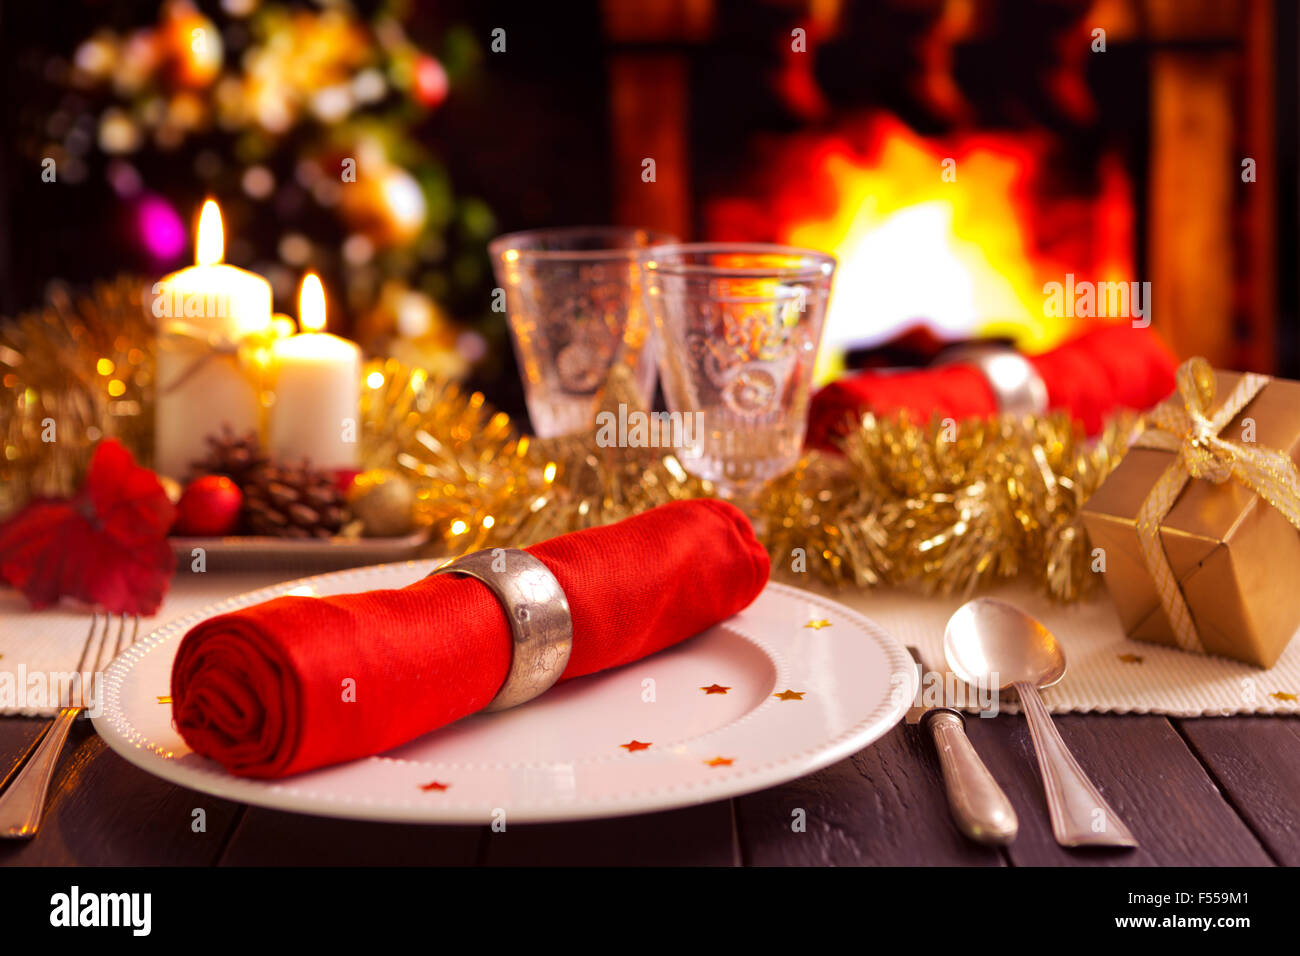 Dinner Setting a romantic christmas dinner table setting with candles and